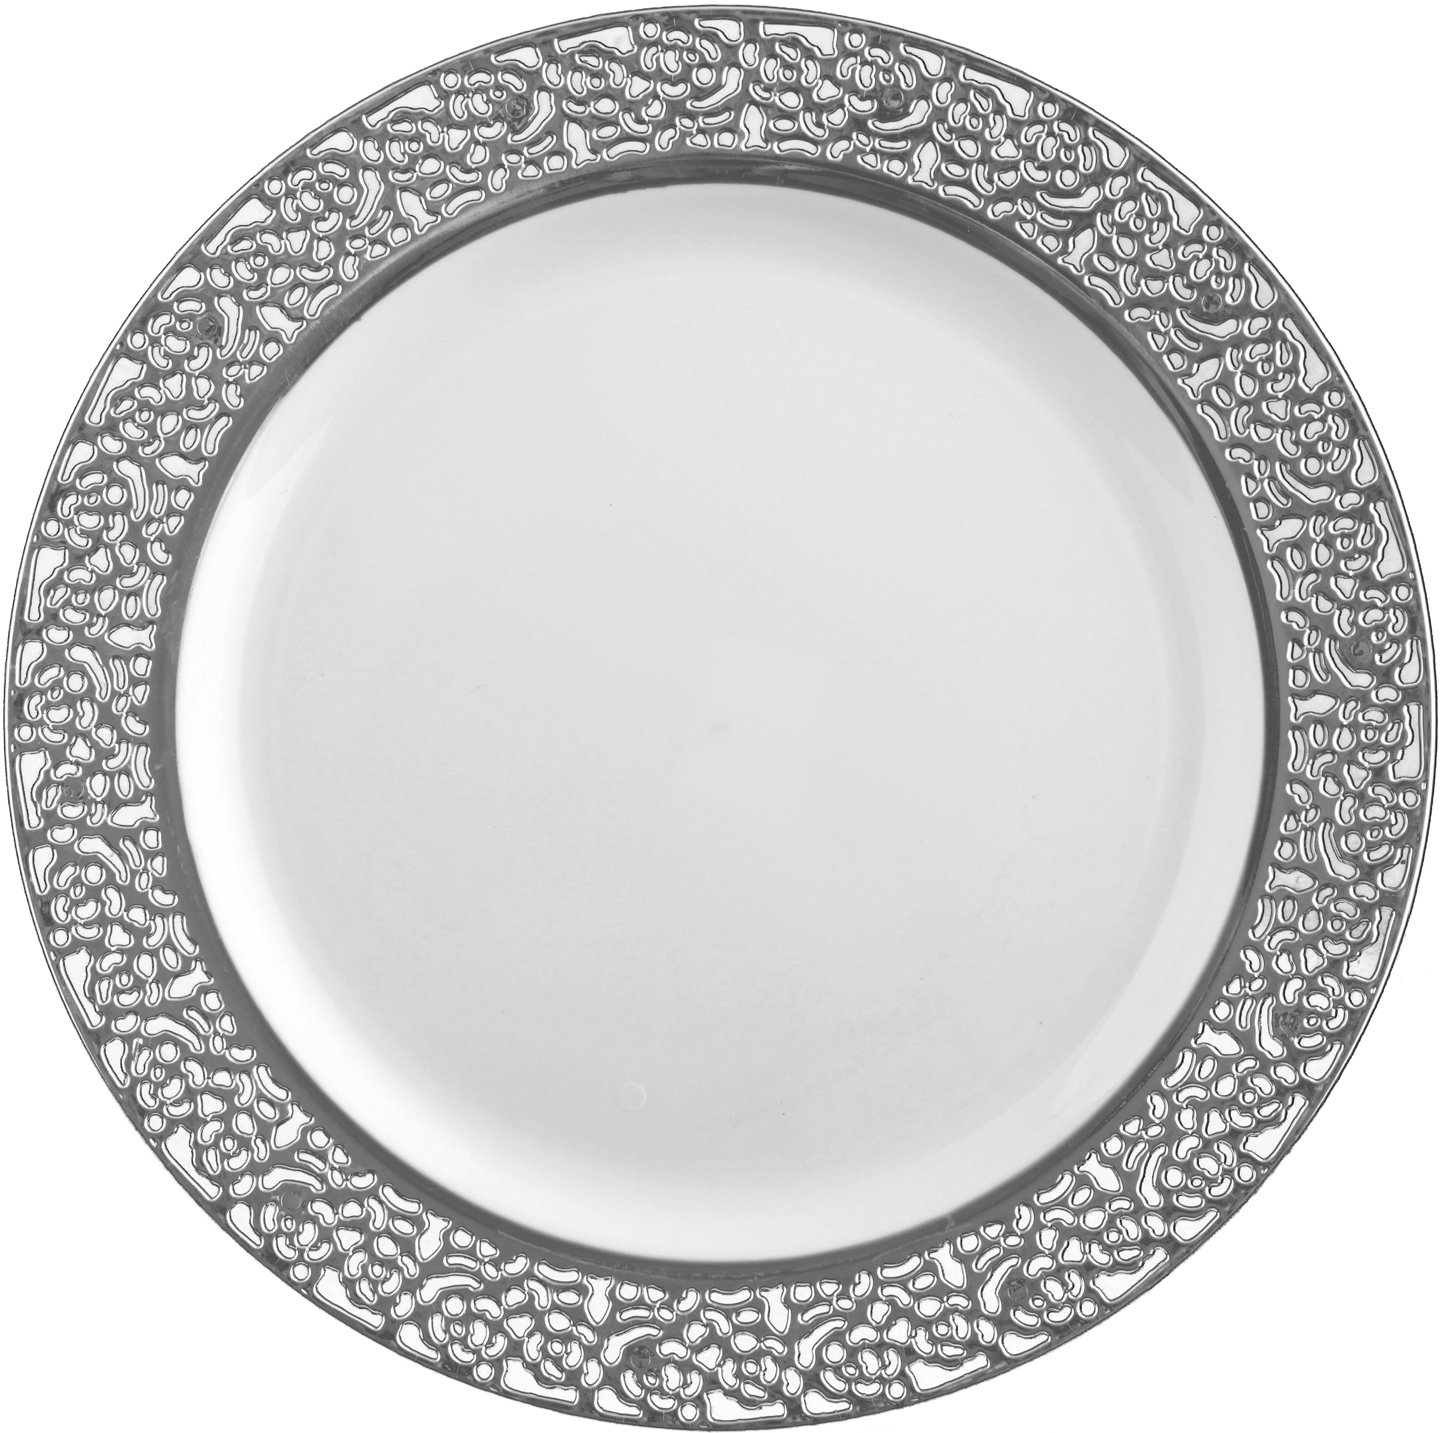 Amazon.com Inspiration White with Silver Lace Rim 10.25\  Heavyweight Plastic Dinner Plates 10 Count Kitchen \u0026 Dining  sc 1 st  Amazon.com & Amazon.com: Inspiration White with Silver Lace Rim 10.25 ...